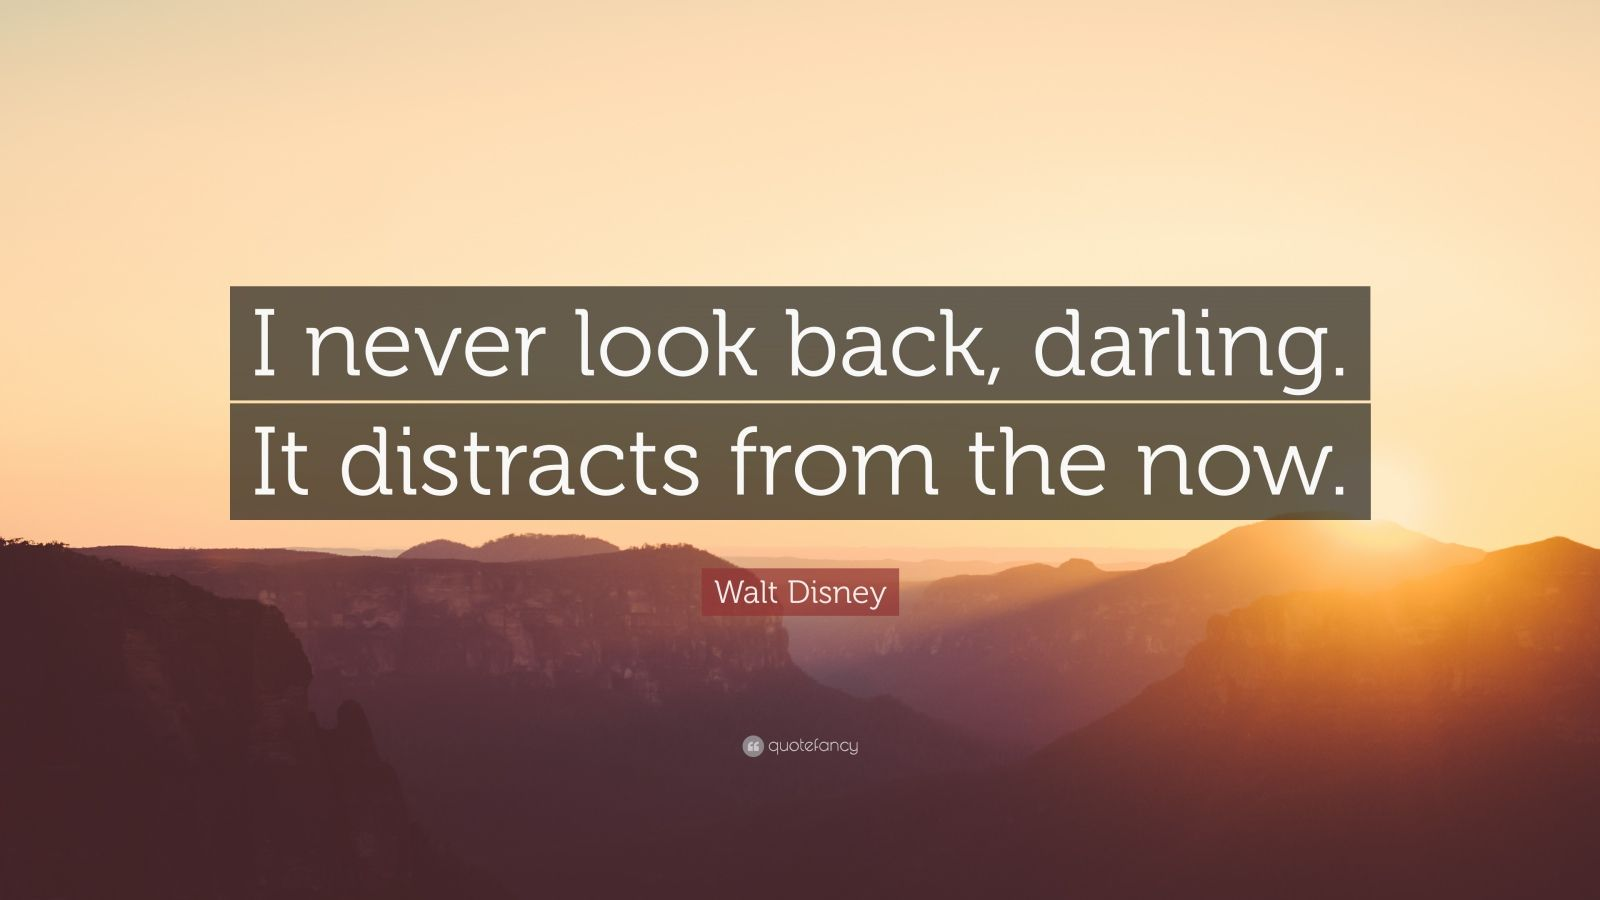 Walt Disney Quotes 100 Wallpapers Quotefancy